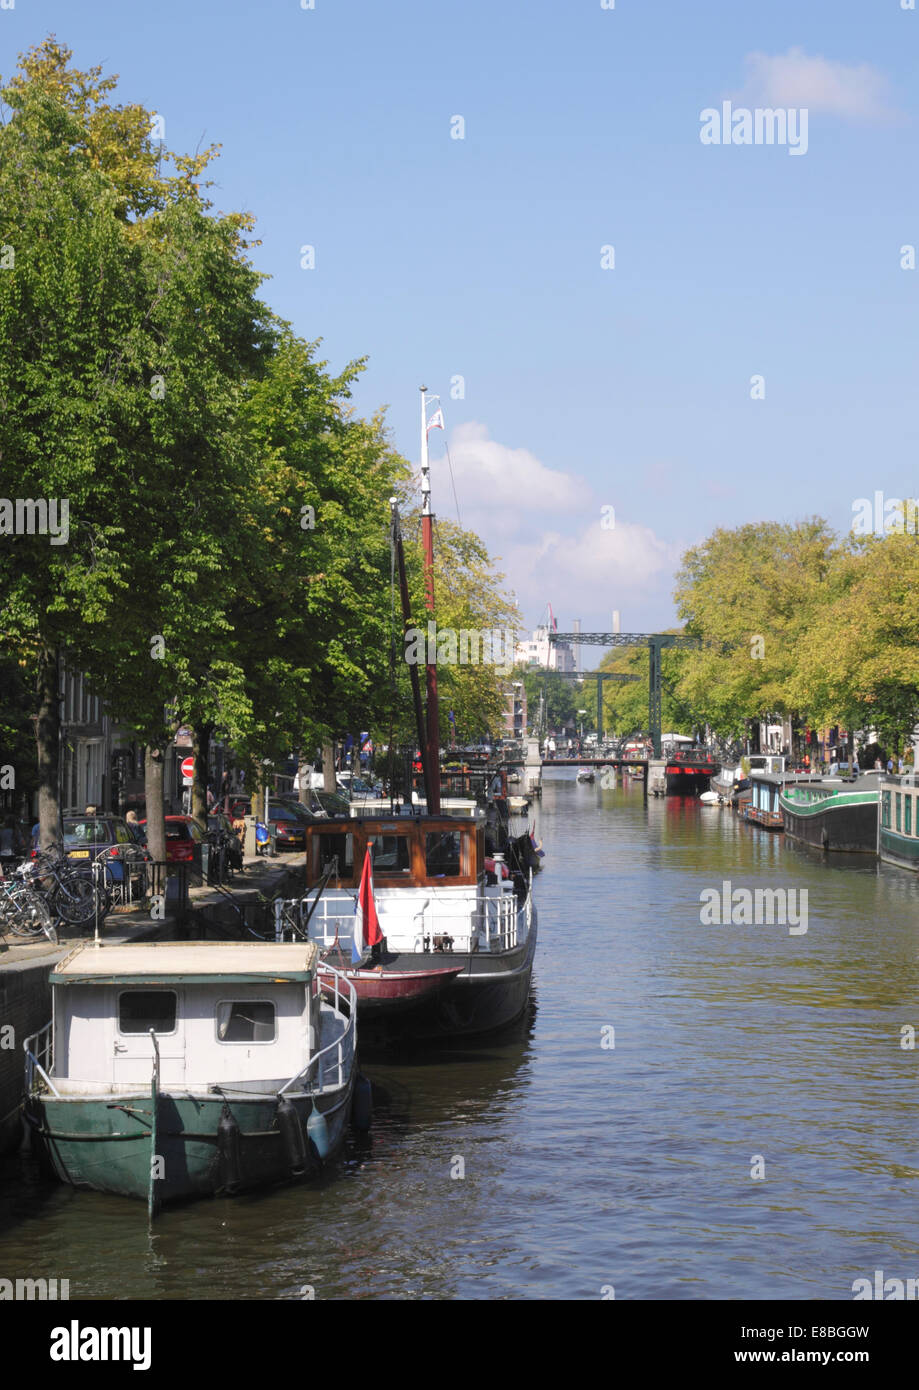 Brouwersgracht Canal in Western Canal Ring District Amsterdam Holland - Stock Image